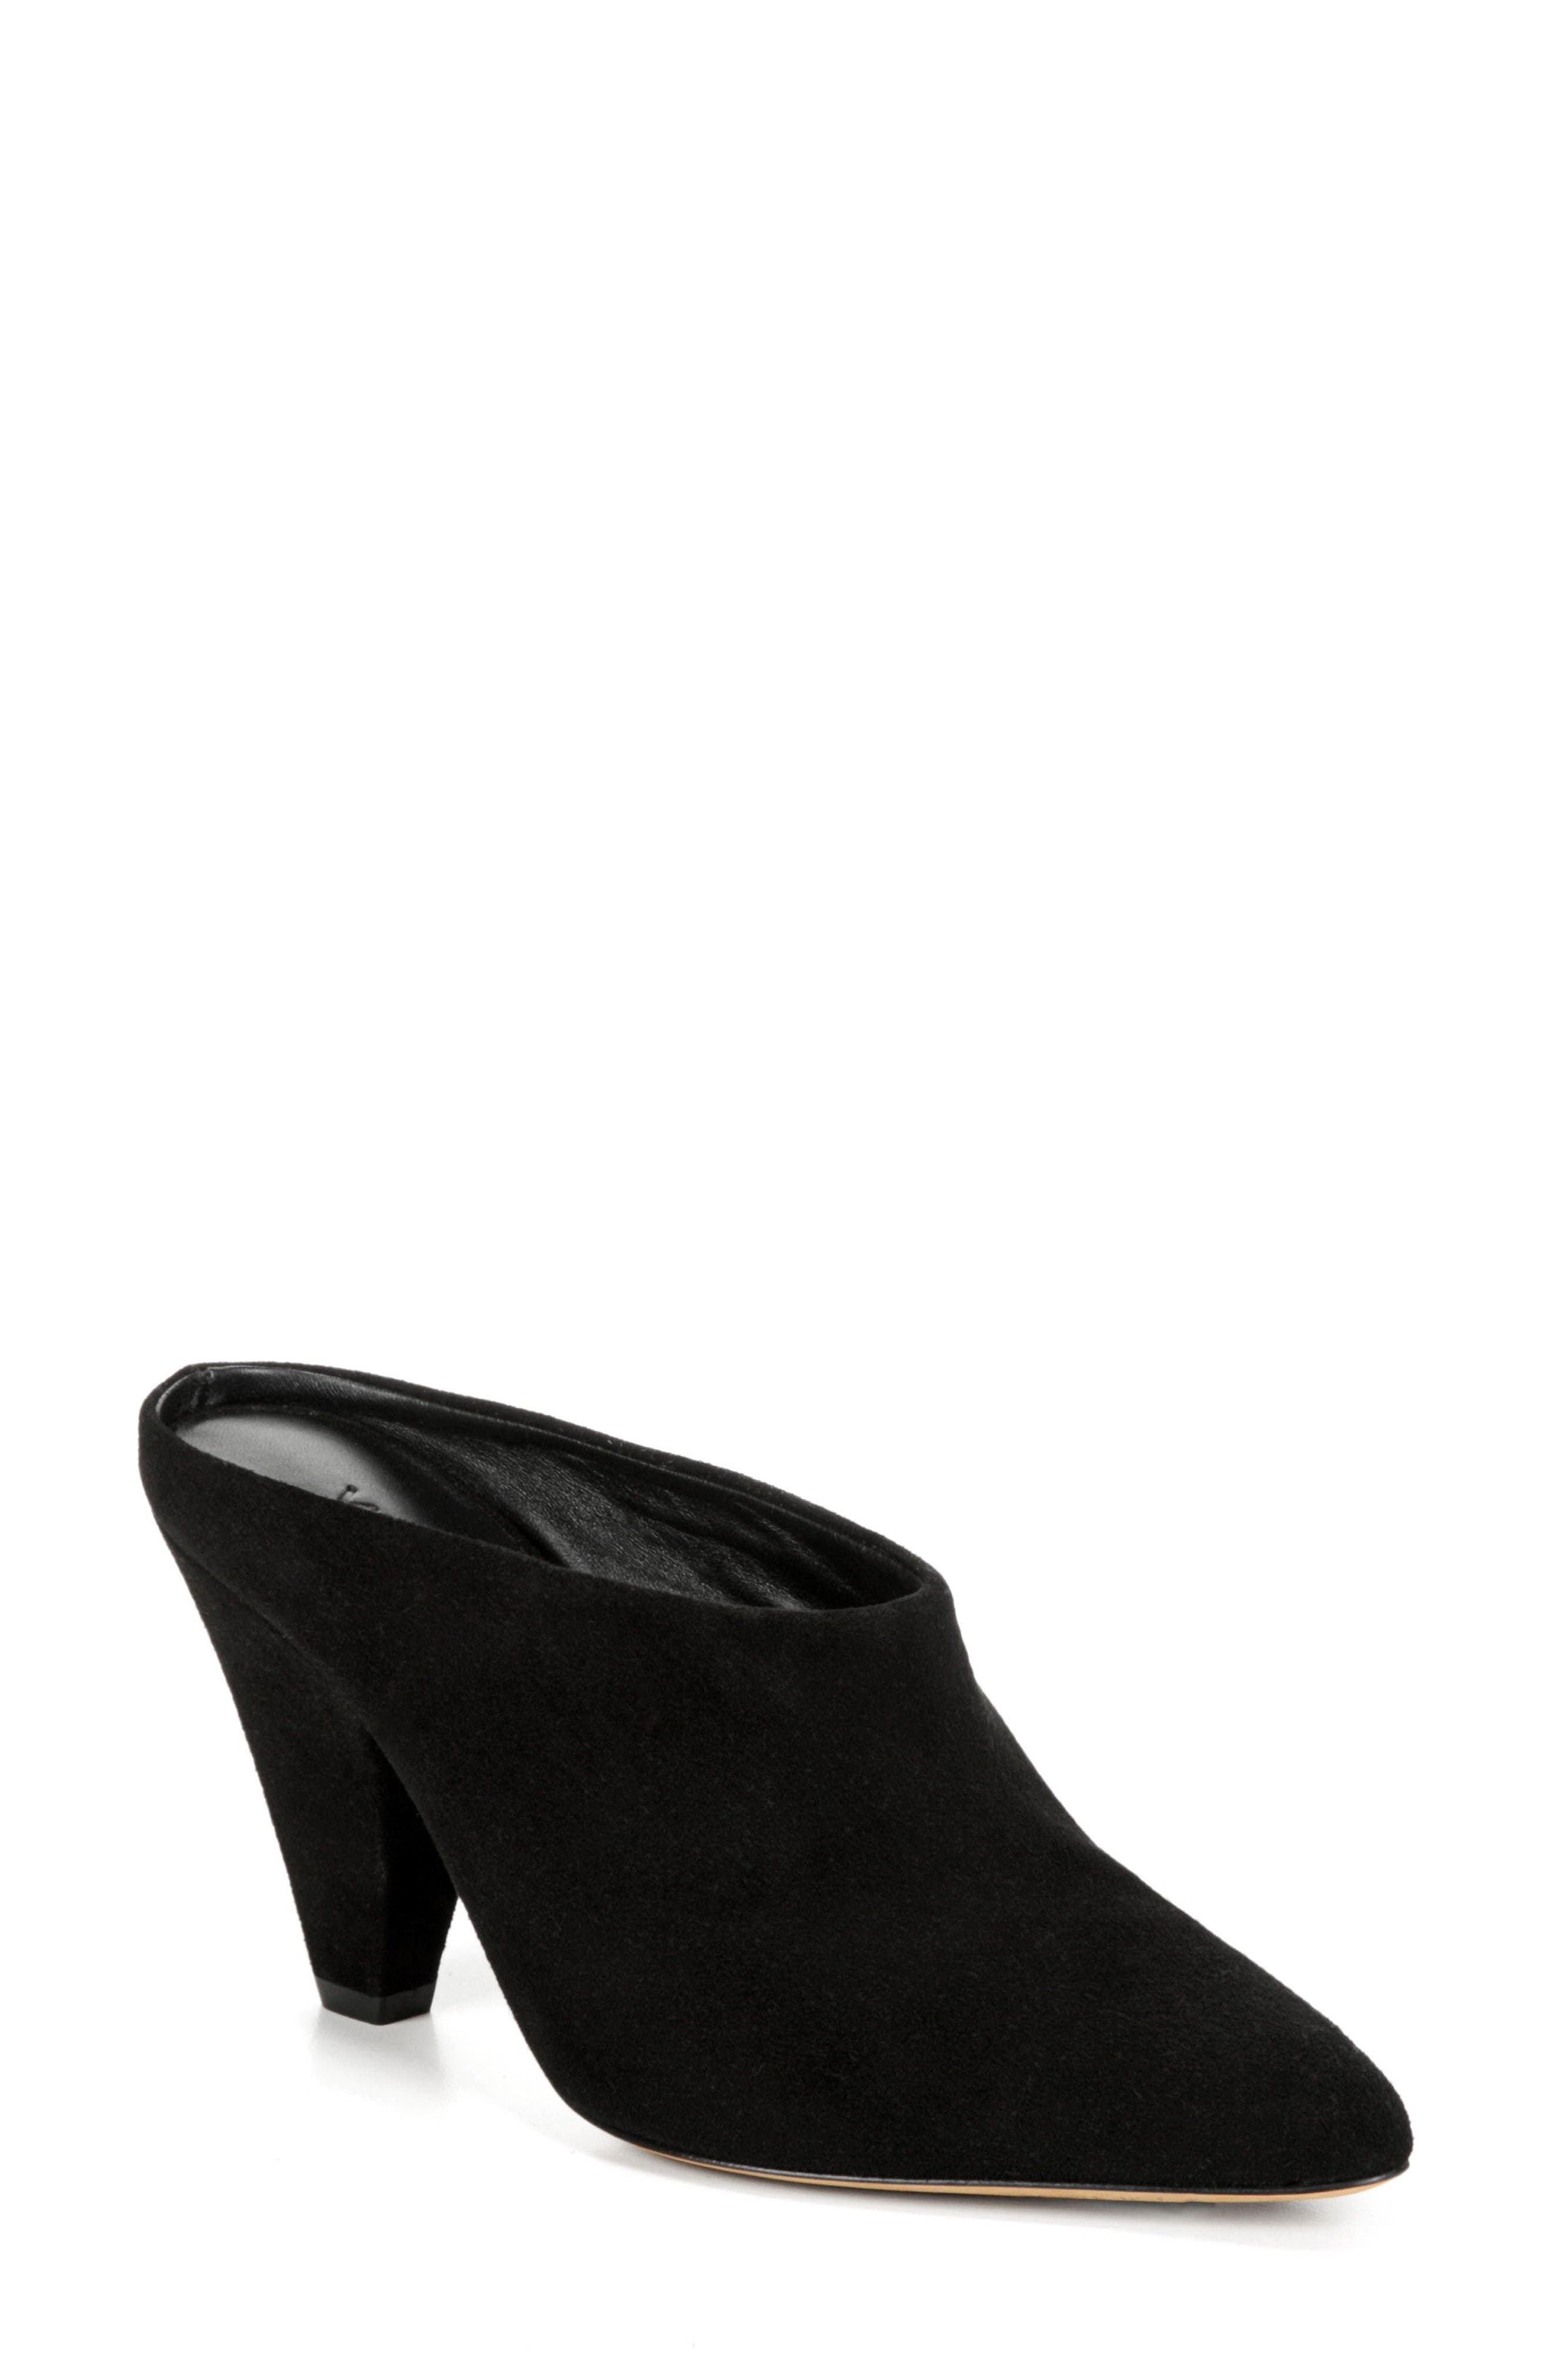 Emberly Mule,                         Main,                         color, 001